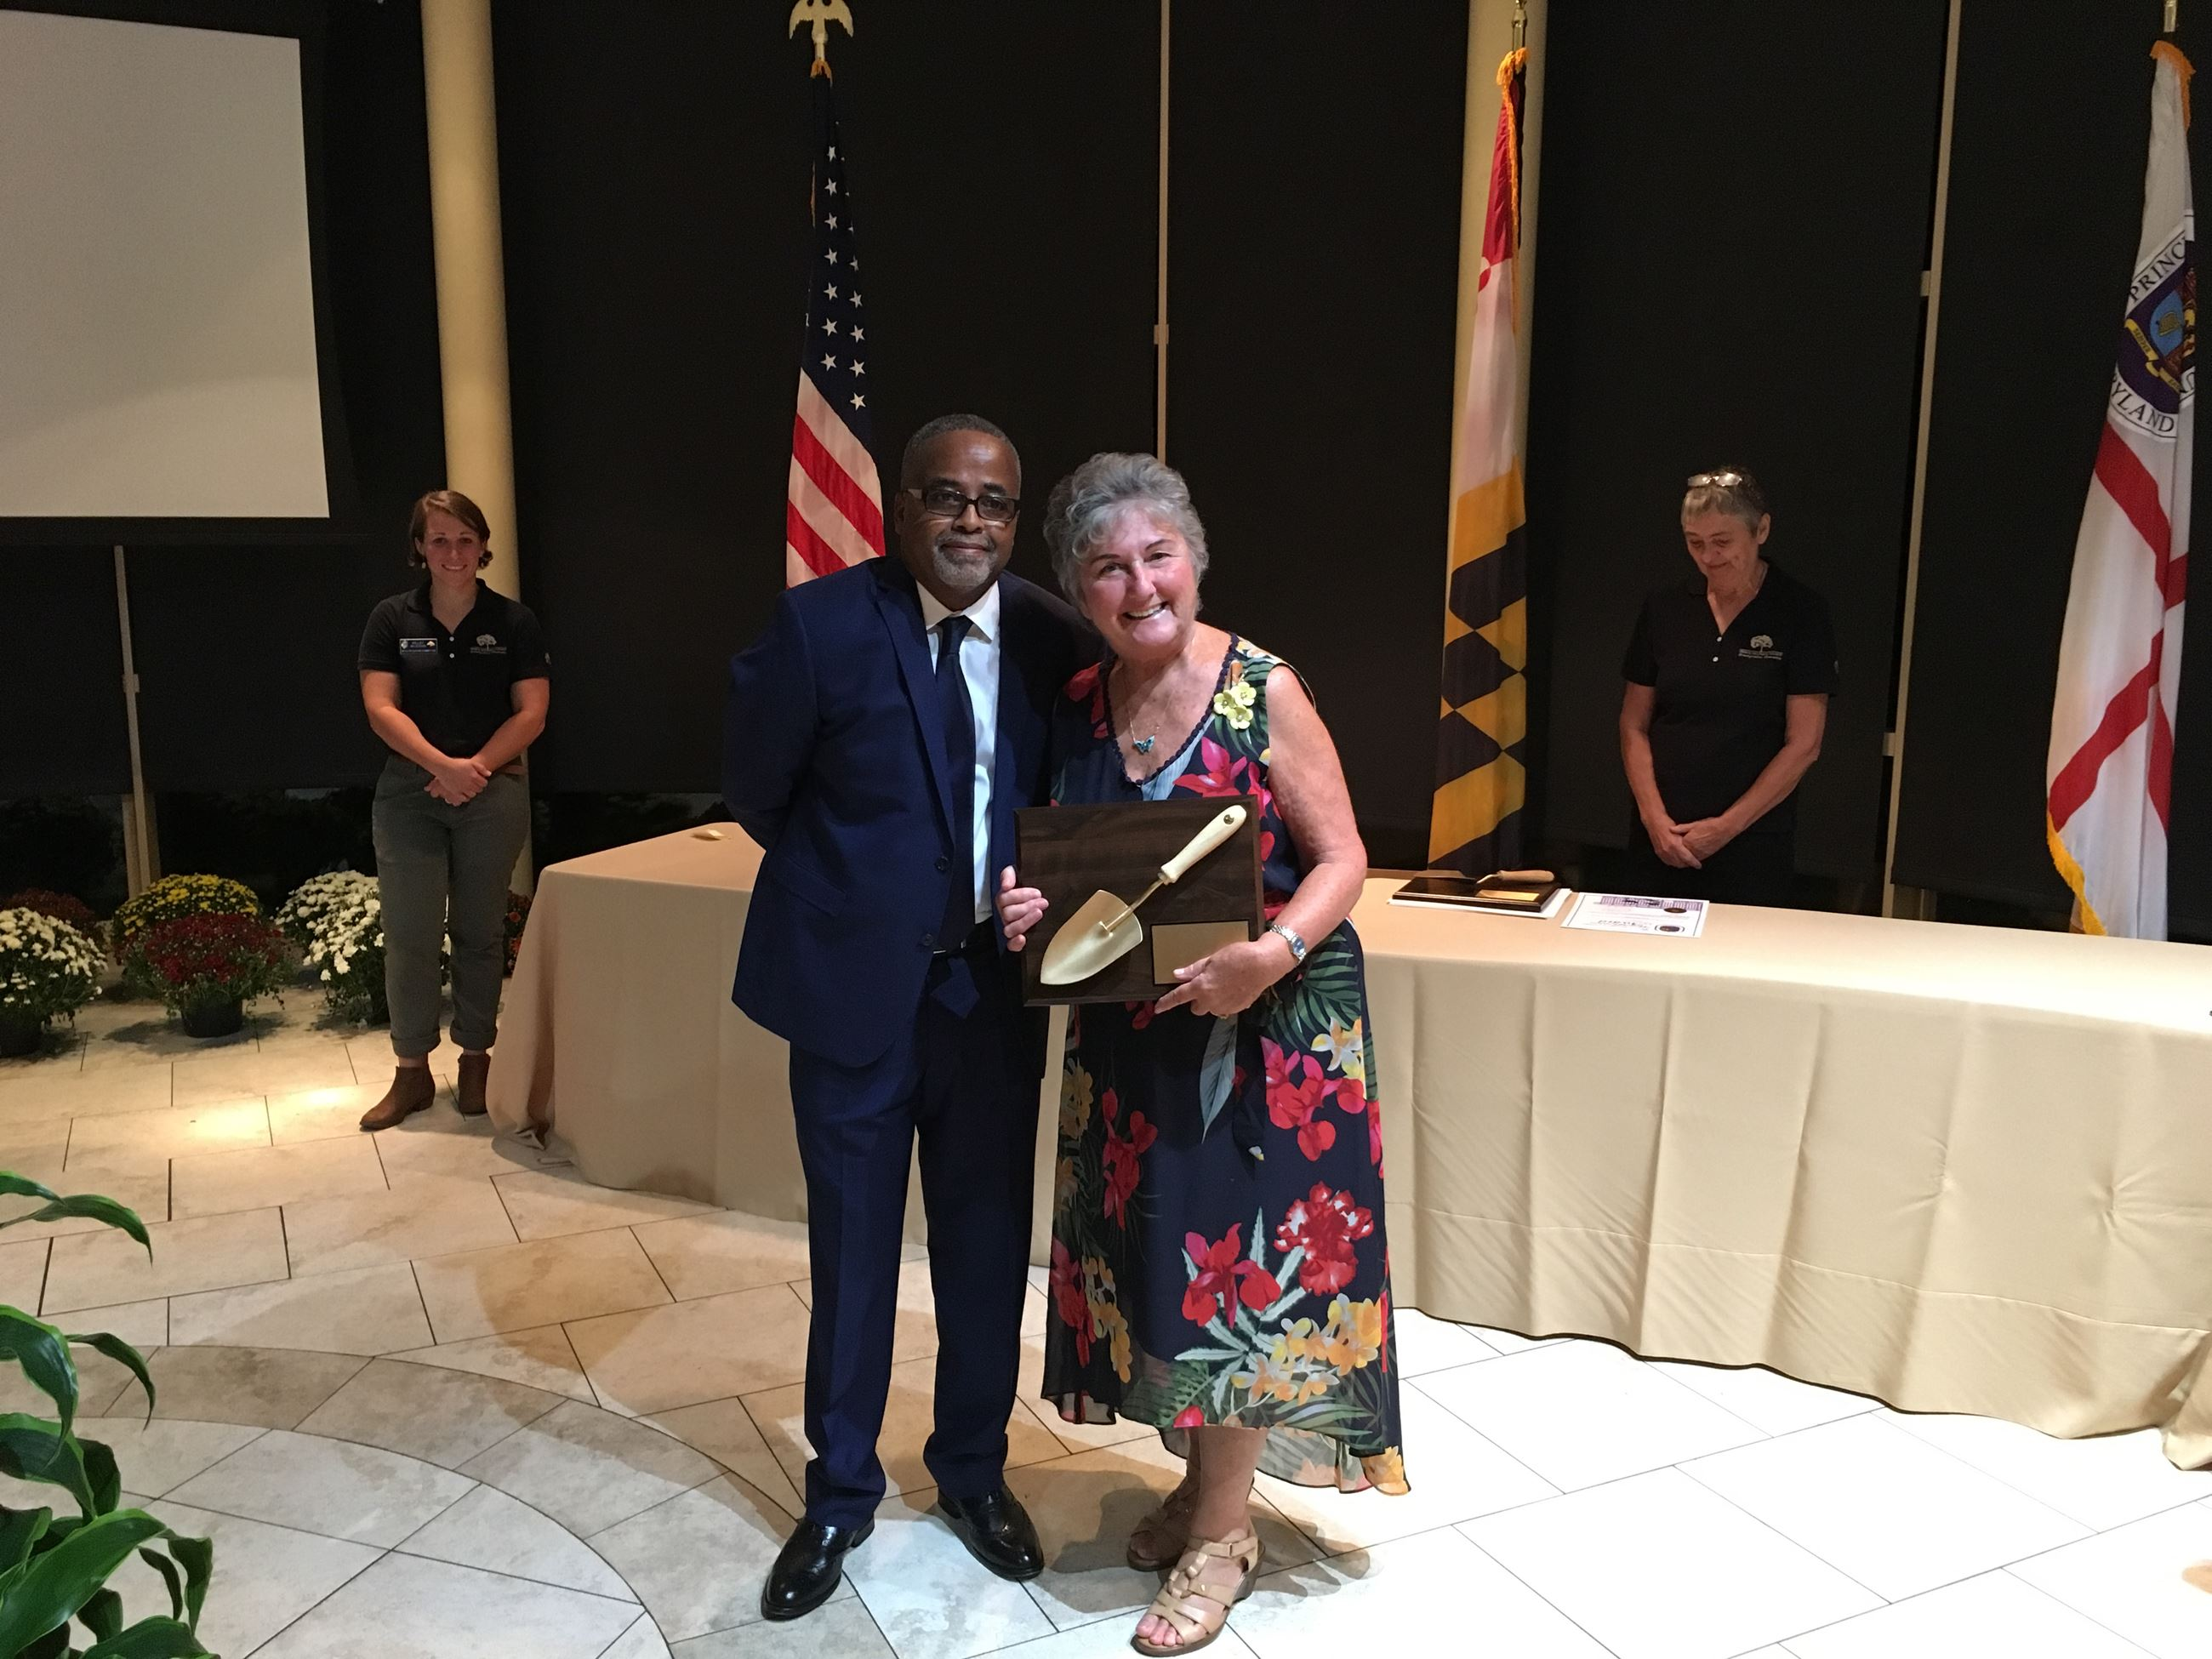 2018 Prince George's County Beautification Awards Ceremony